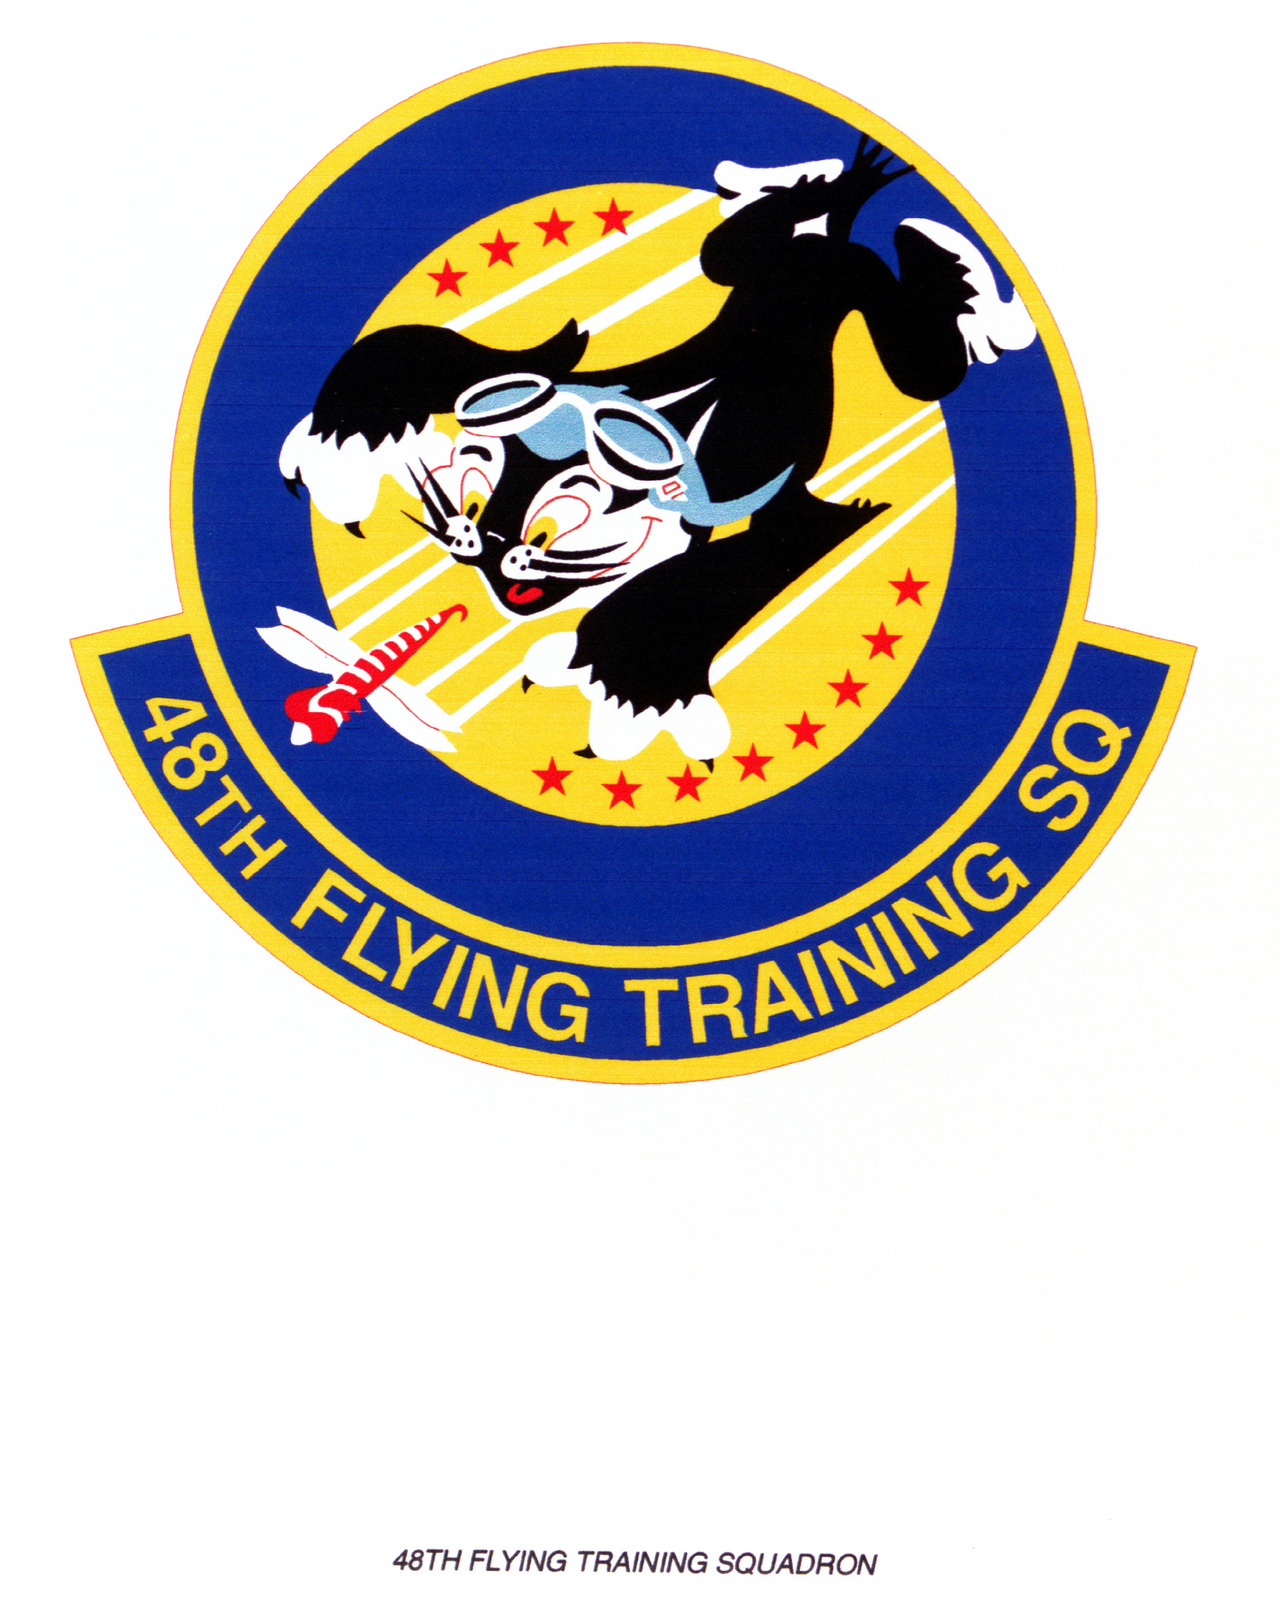 Air Force Organizational Emblem. 48th Flying Training Squadron Exact Date Shot Unknown